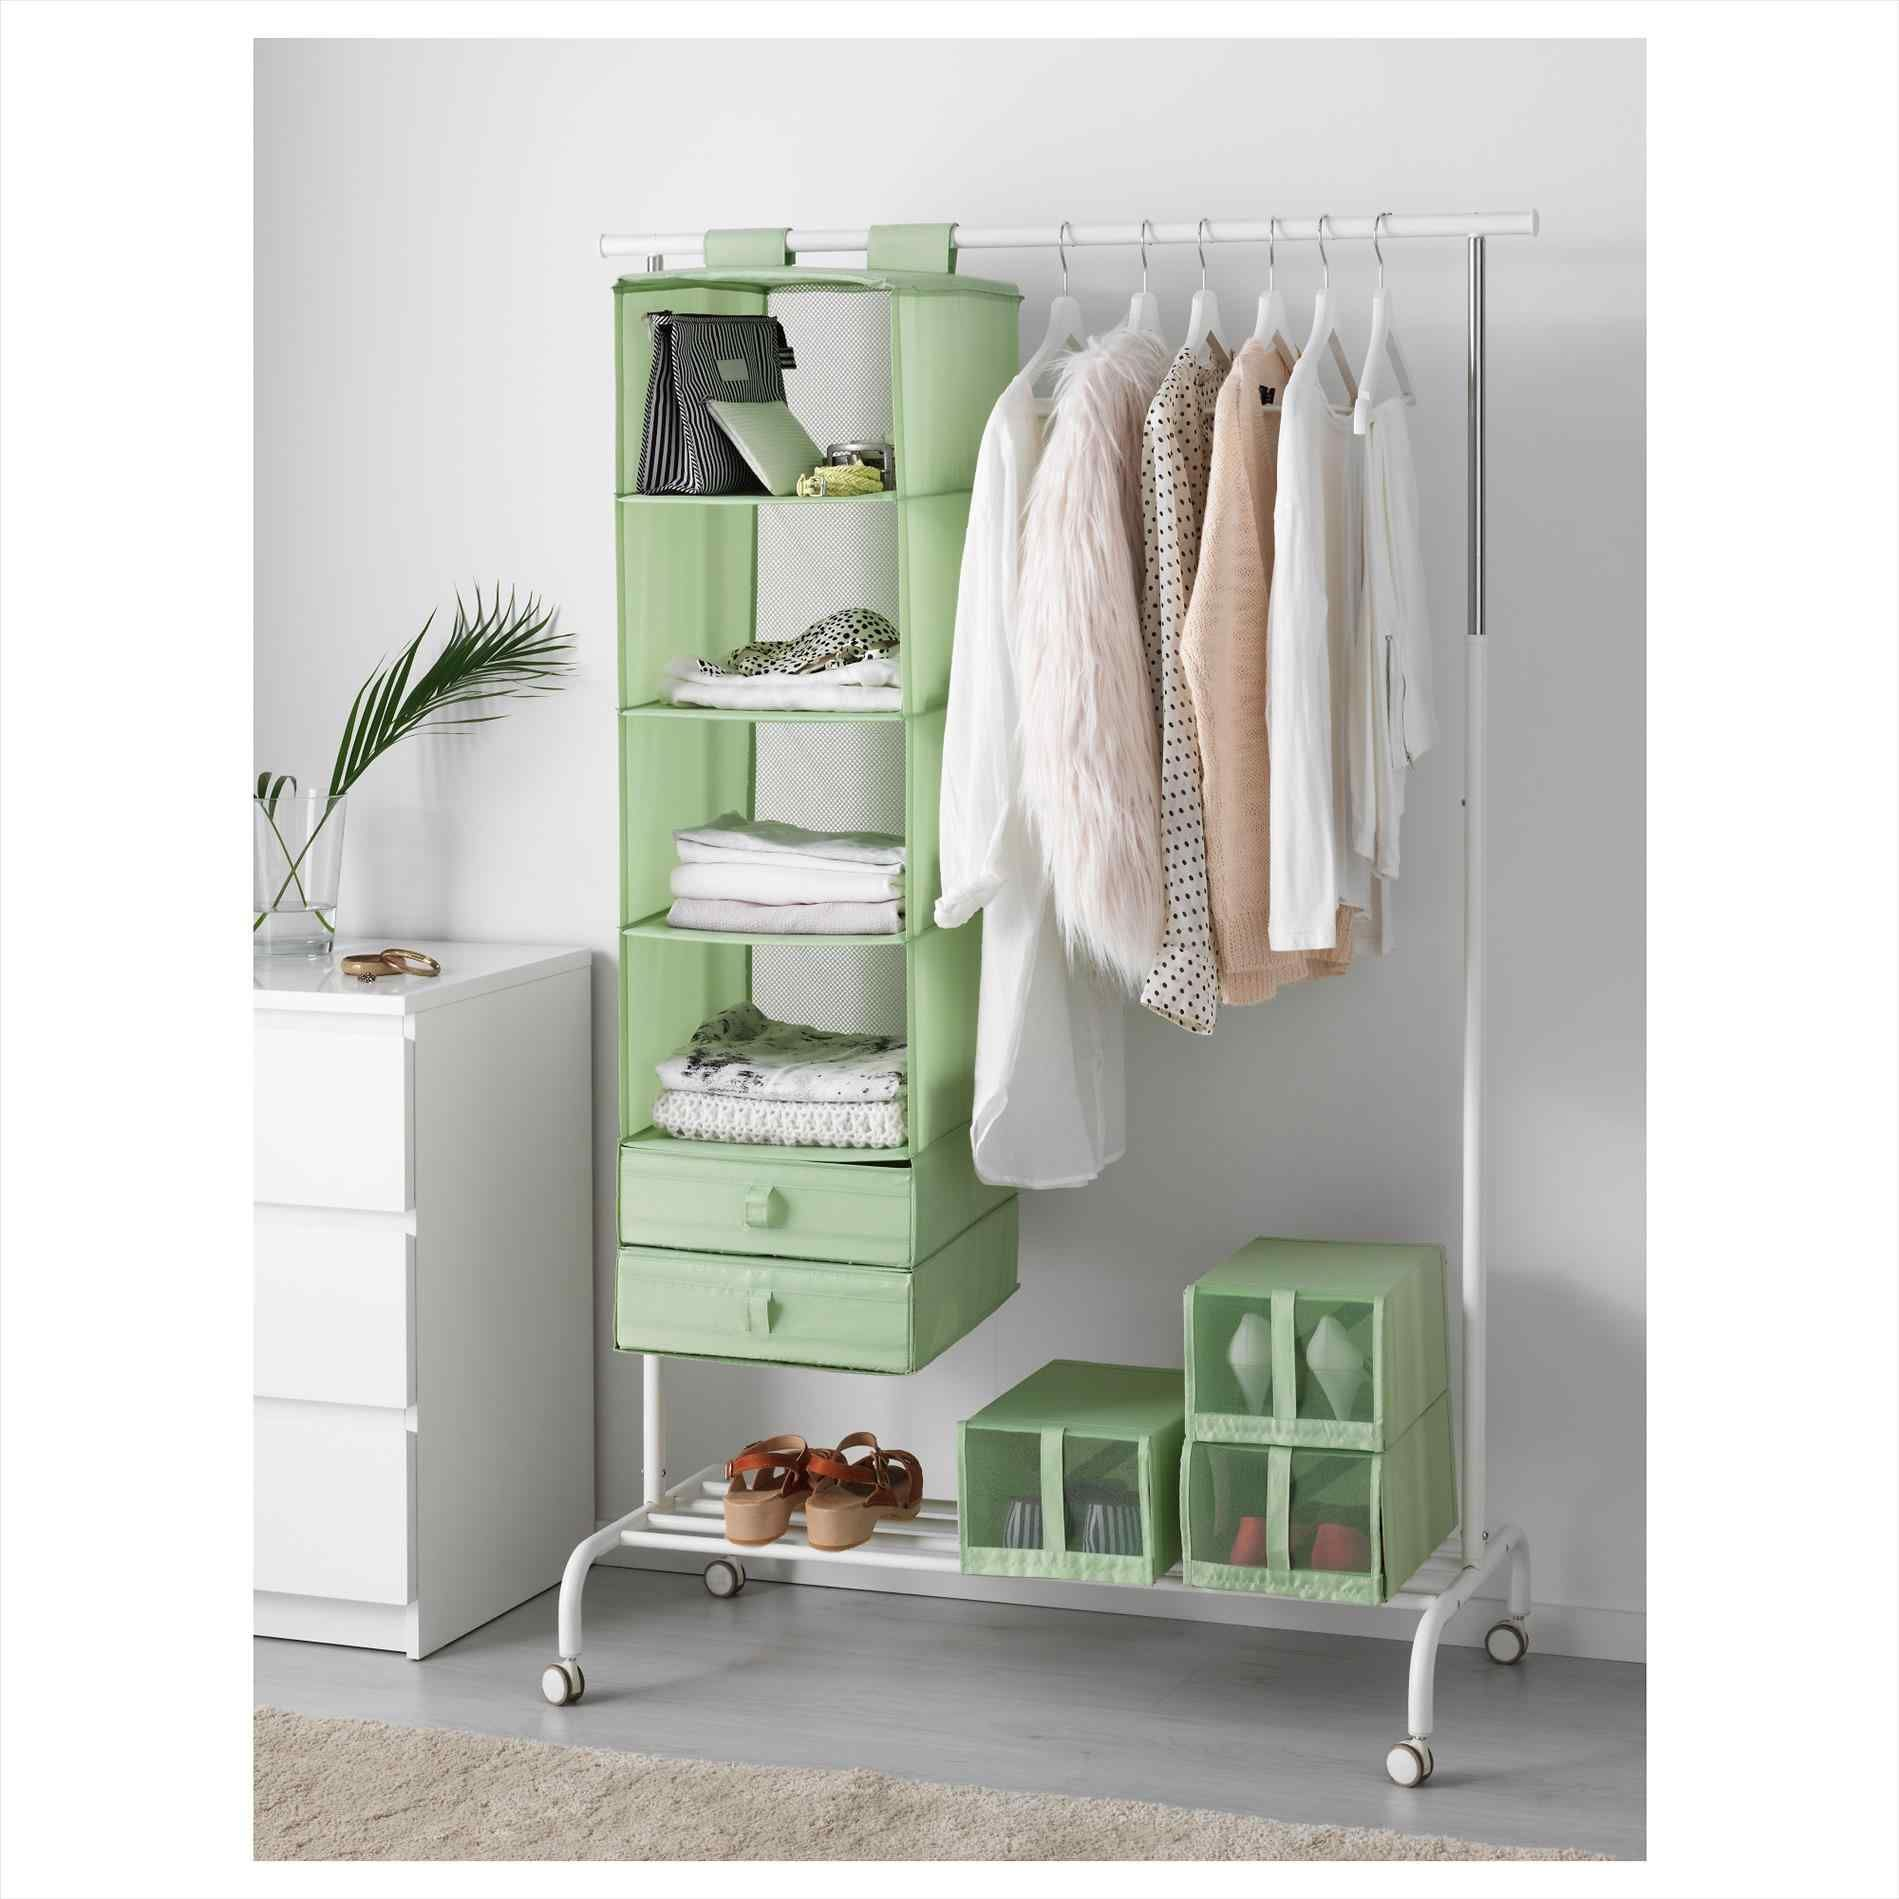 12+ Unique Clothes Hanging Solutions For Small Spaces ...